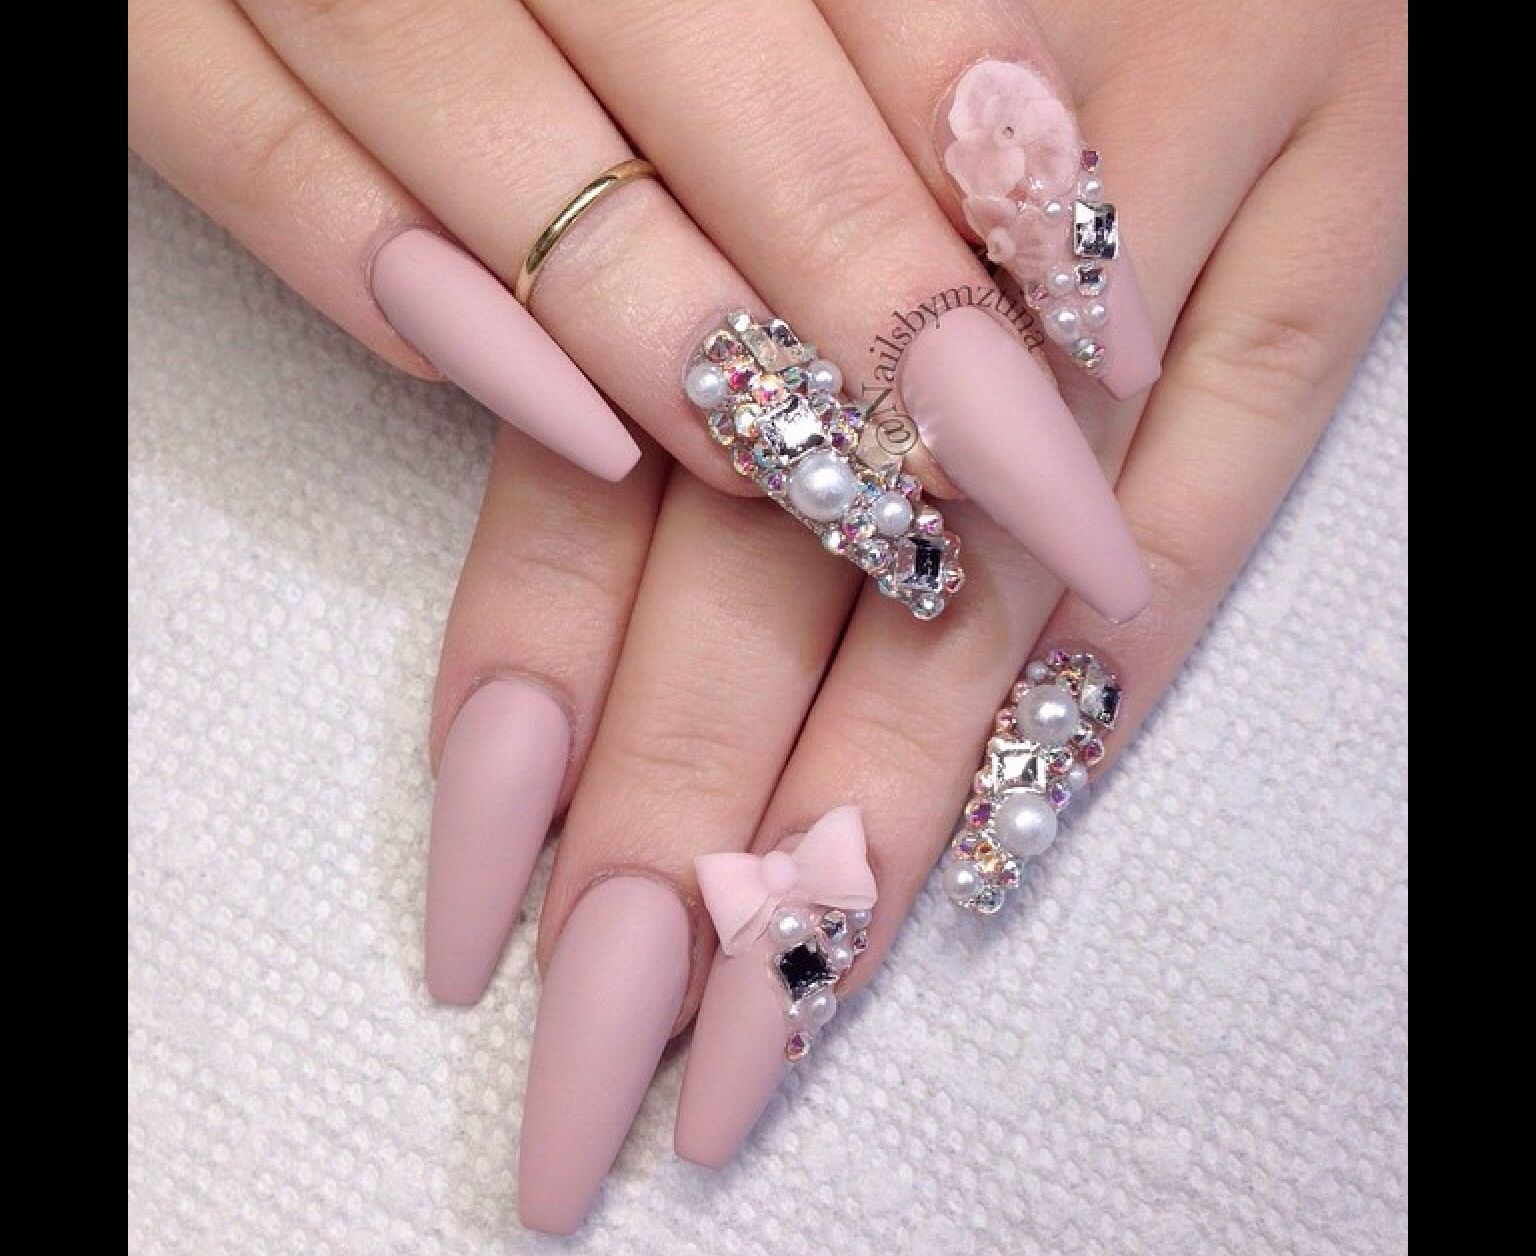 Pin by Ana on Nails | Pinterest | Nail nail, Bling nails and Makeup